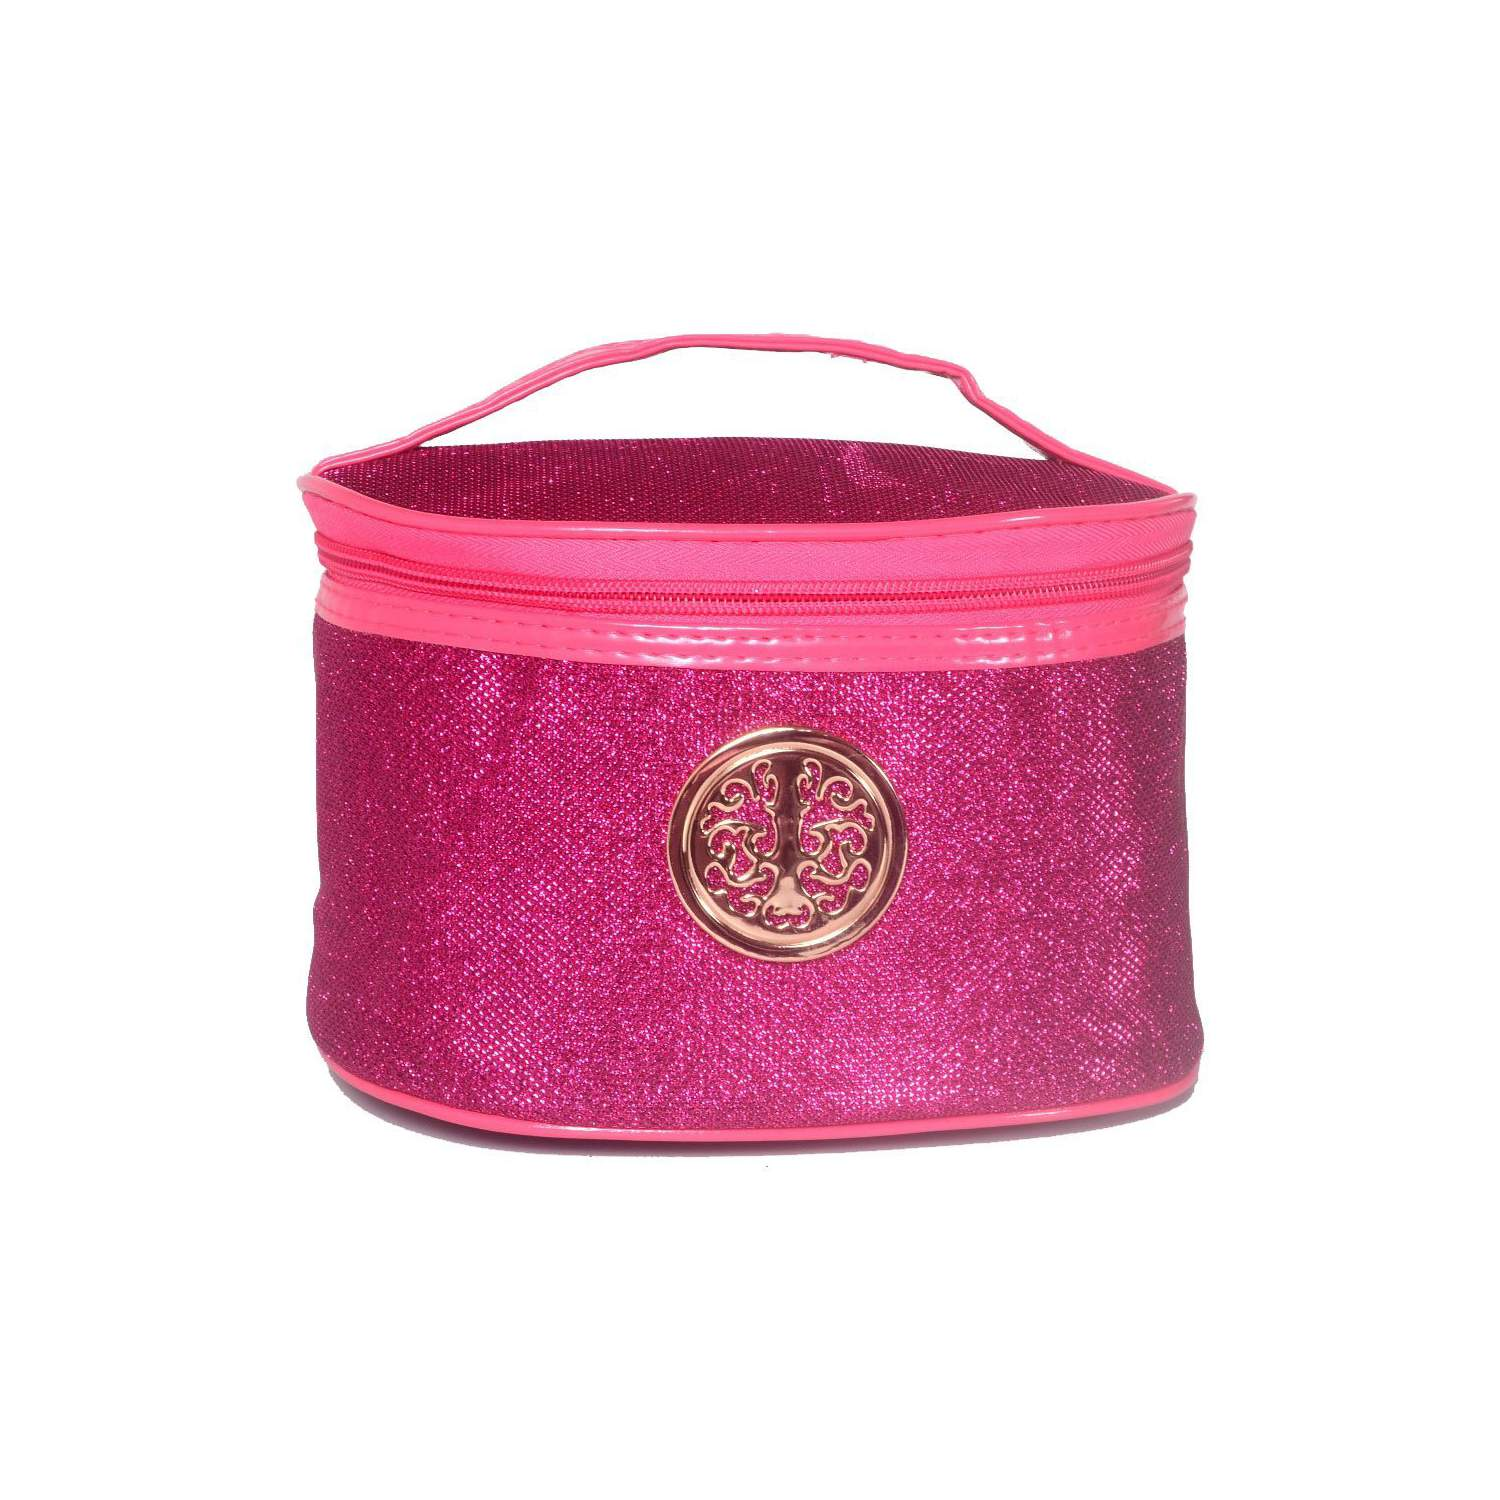 Makeup Pouch (Pink) - Bagaholics Gift